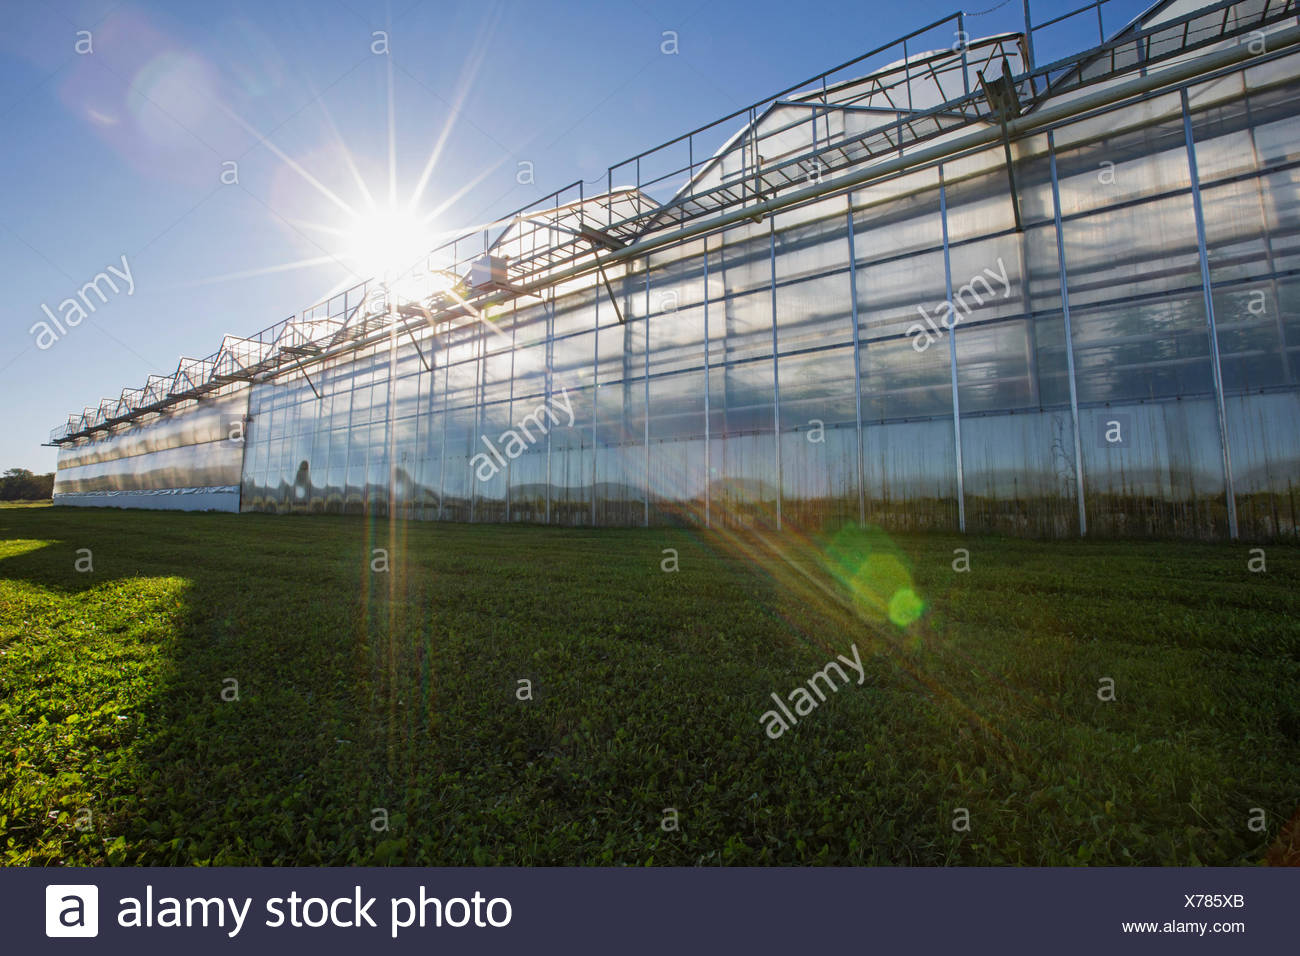 Sun shining over greenhouses - Stock Image